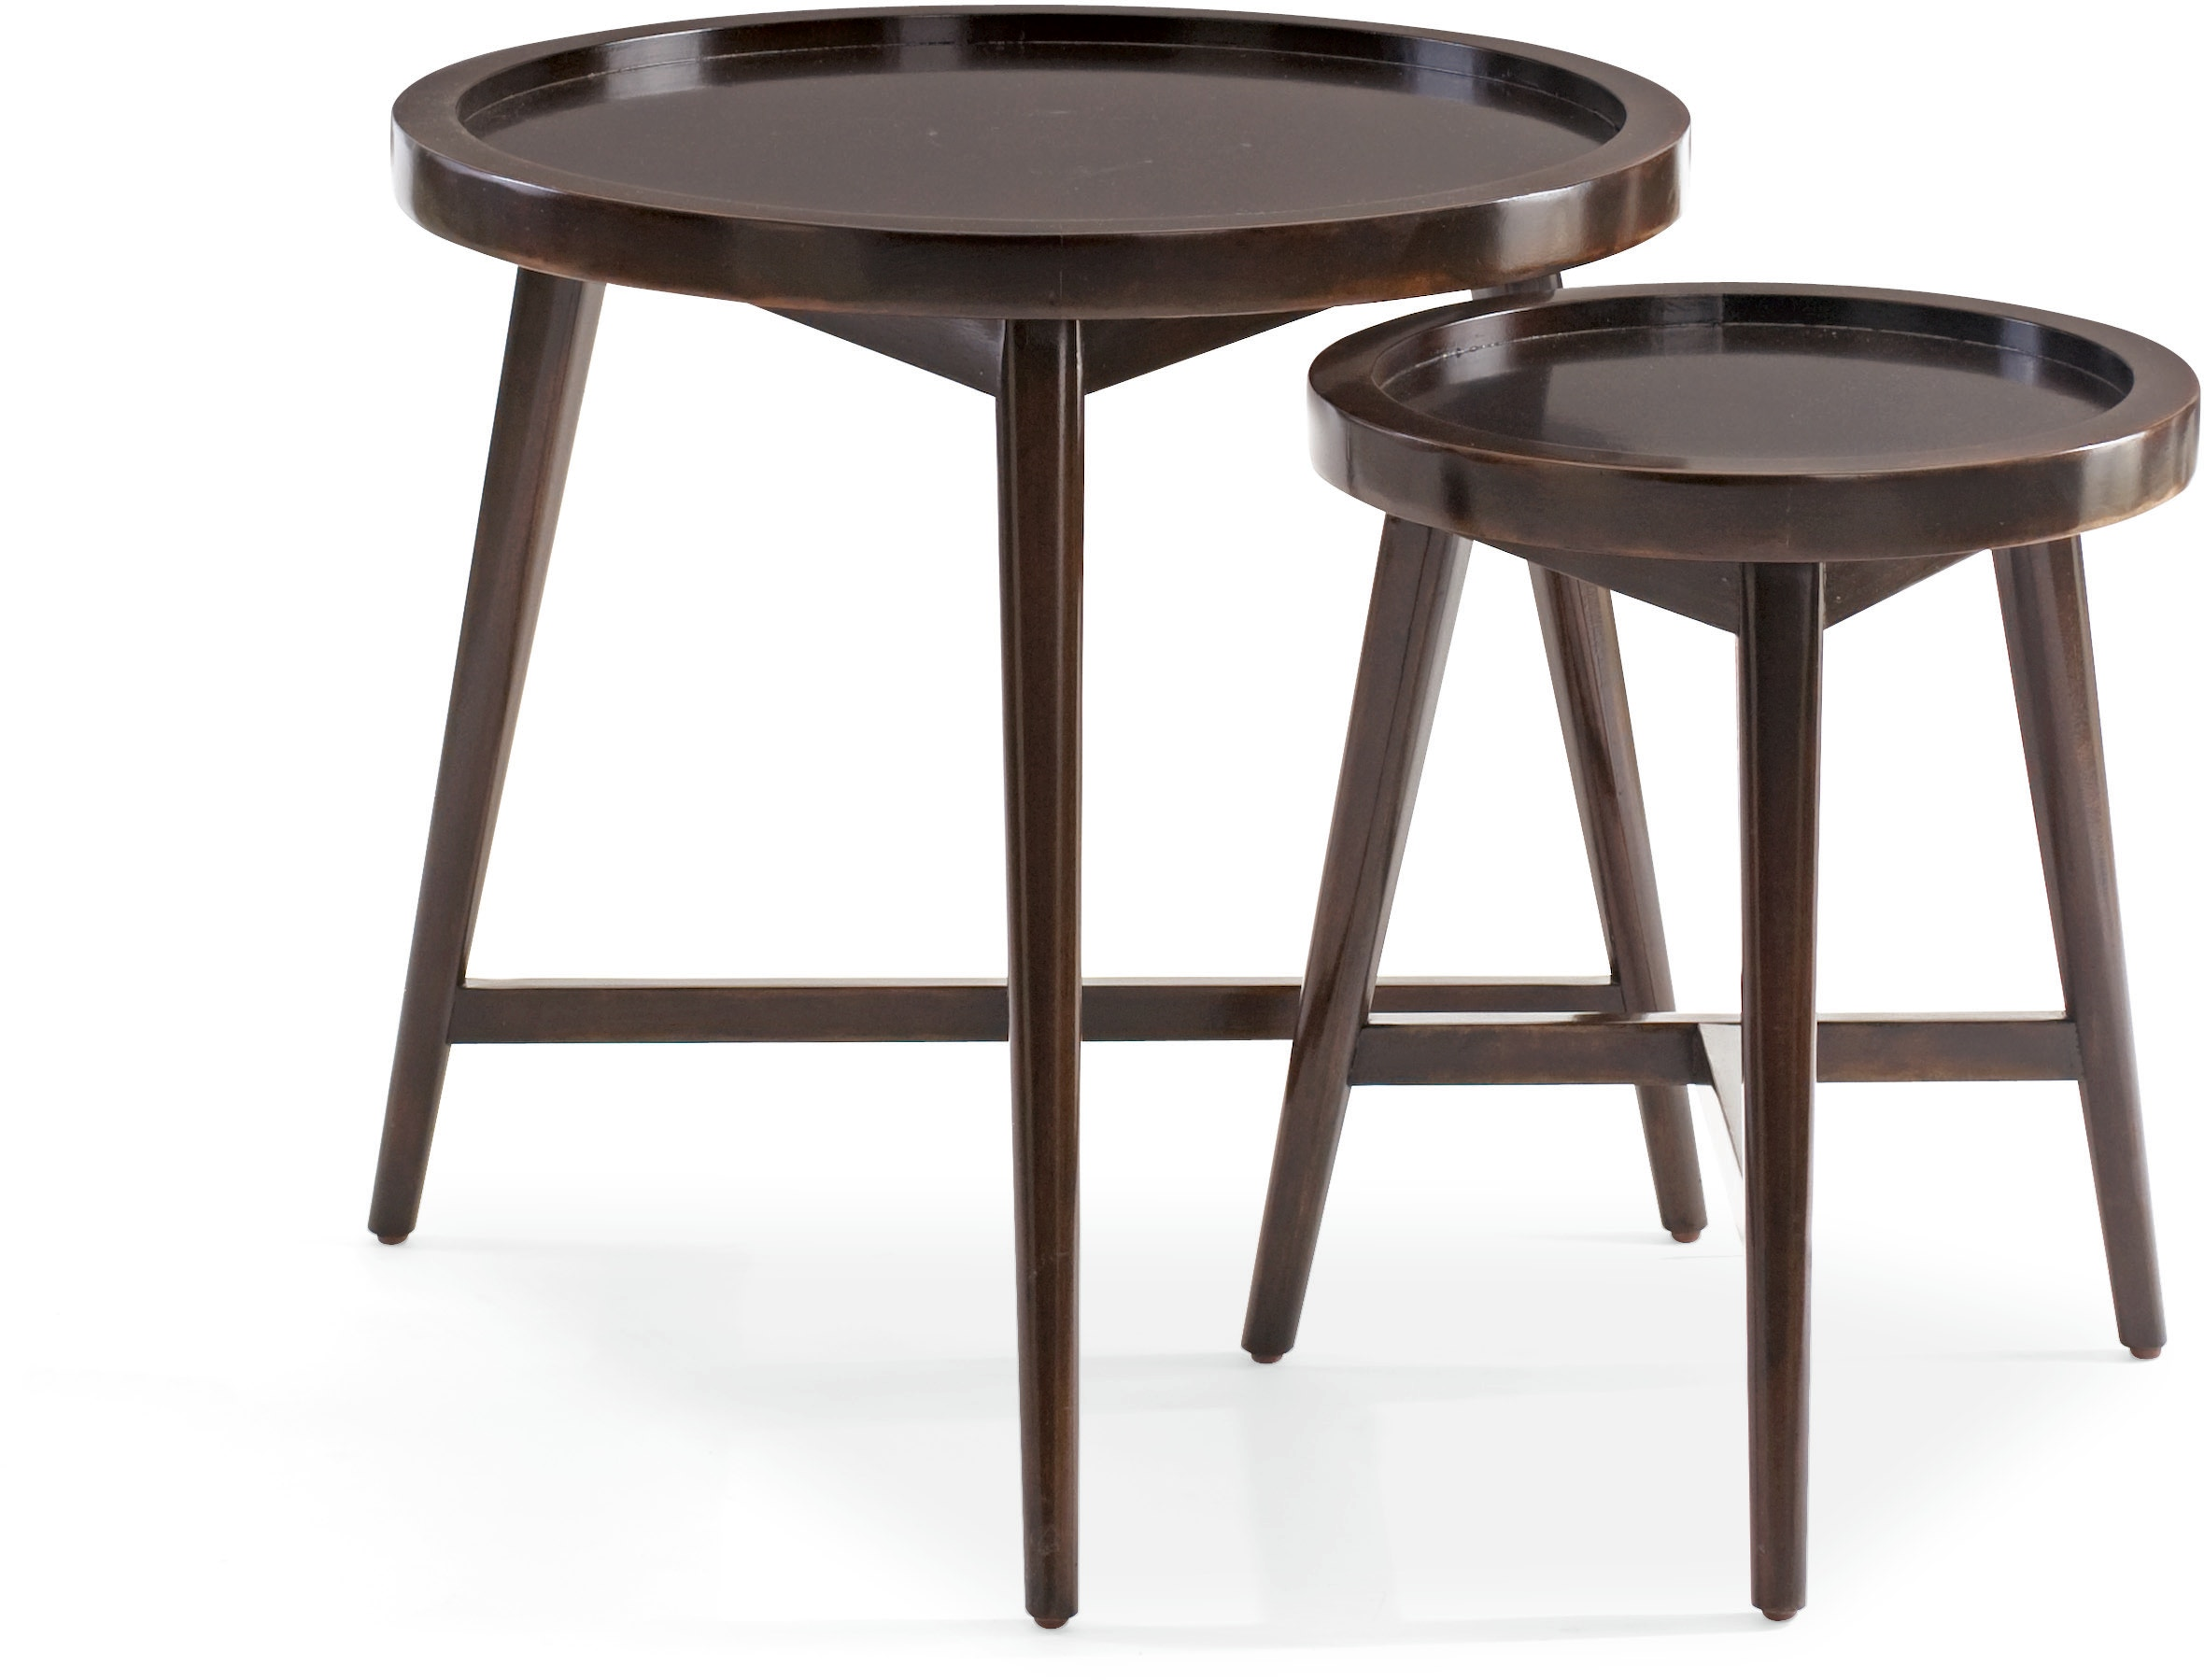 PUTNAM NESTING TABLES : hr326031 from www.smithe.com size 1024 x 768 jpeg 38kB